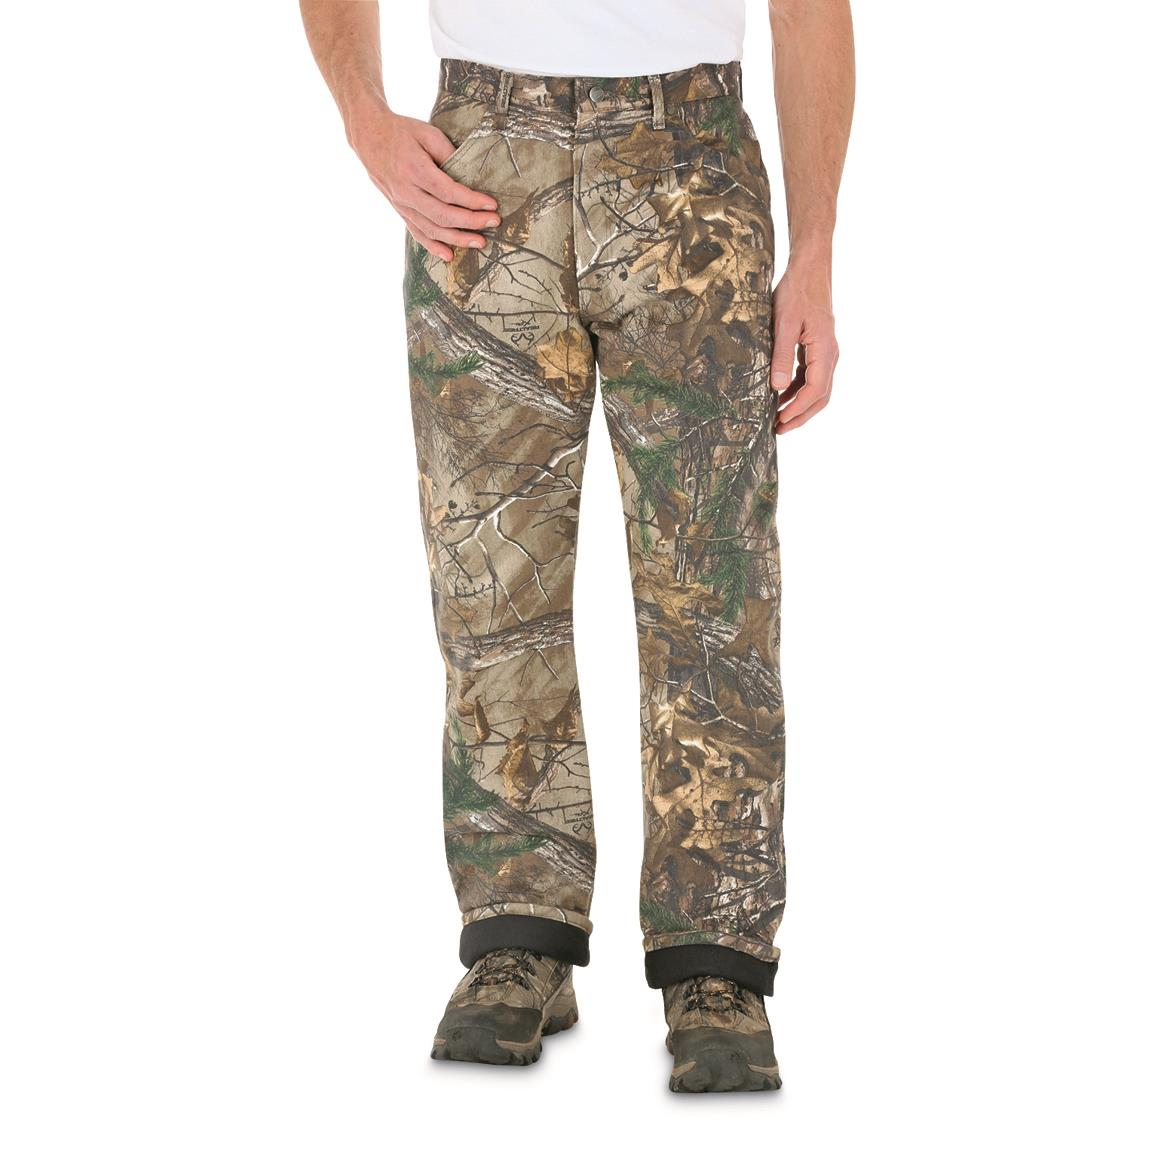 Wrangler Men's ProGear Thermal Jeans, Realtree Xtra